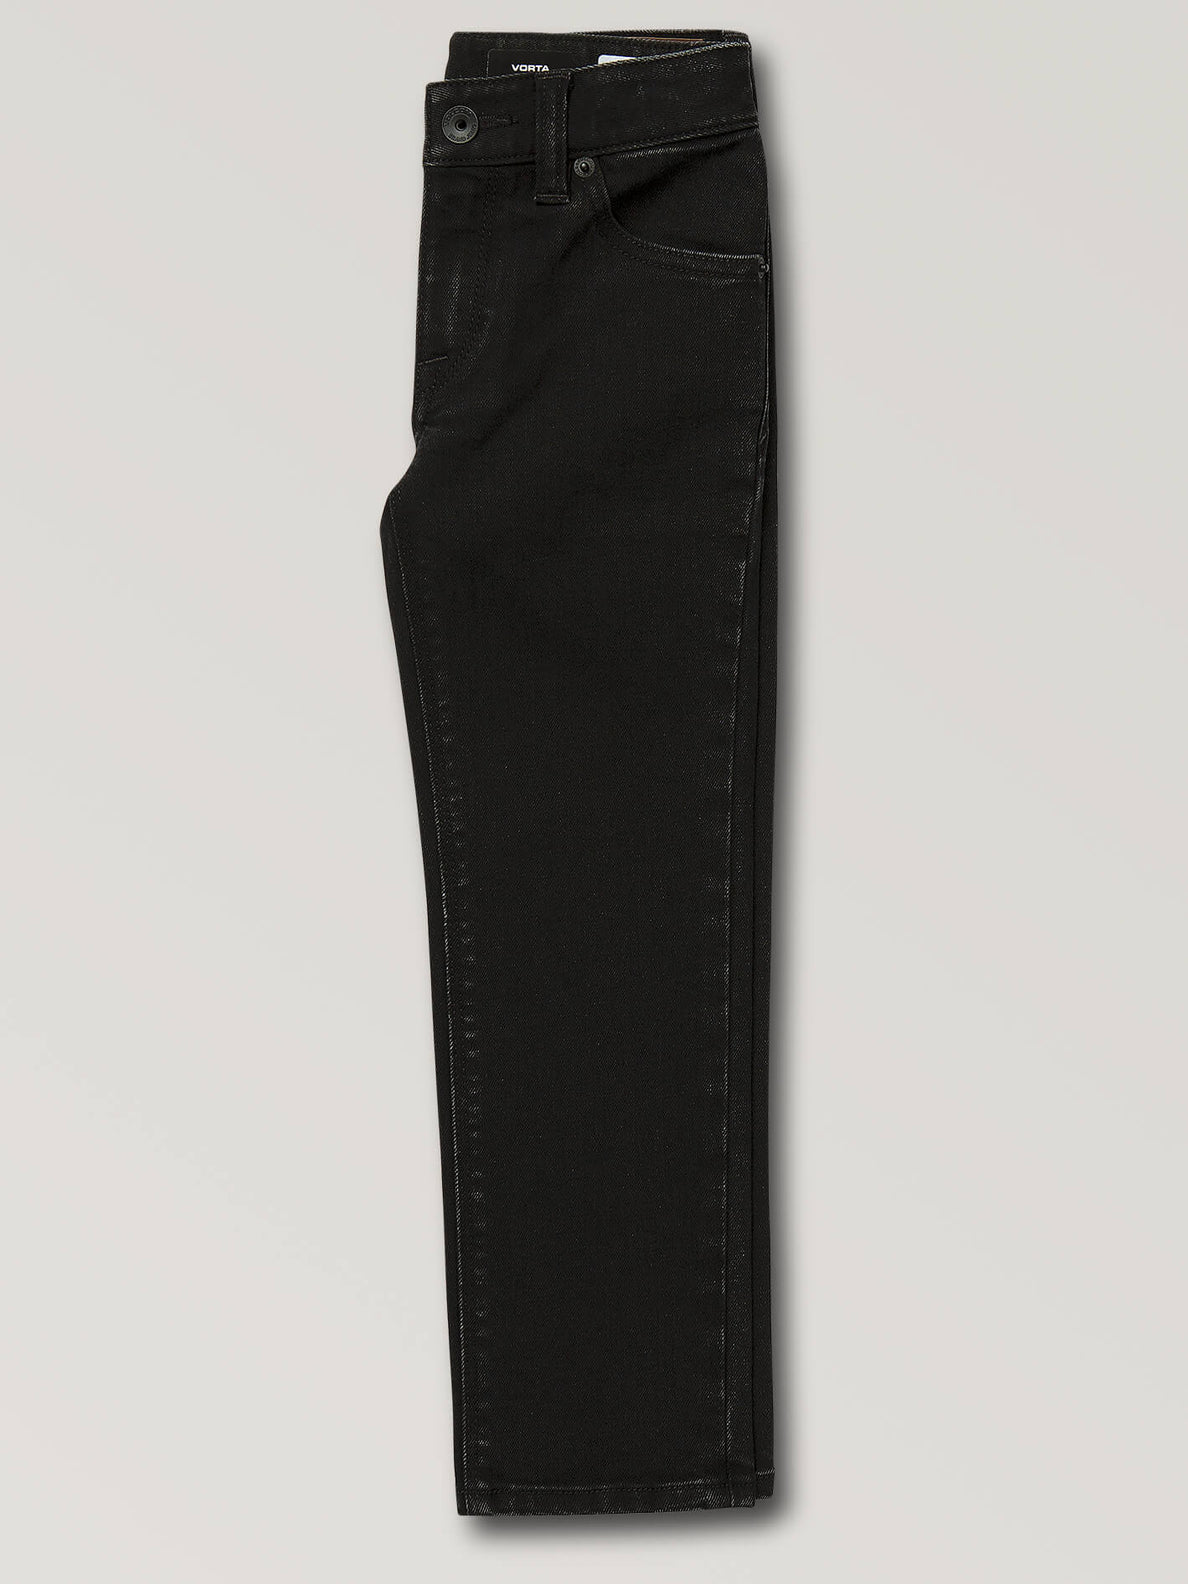 Little Boys Vorta Slim Fit Jeans - Black Out (Y1931501_BKO) [1]